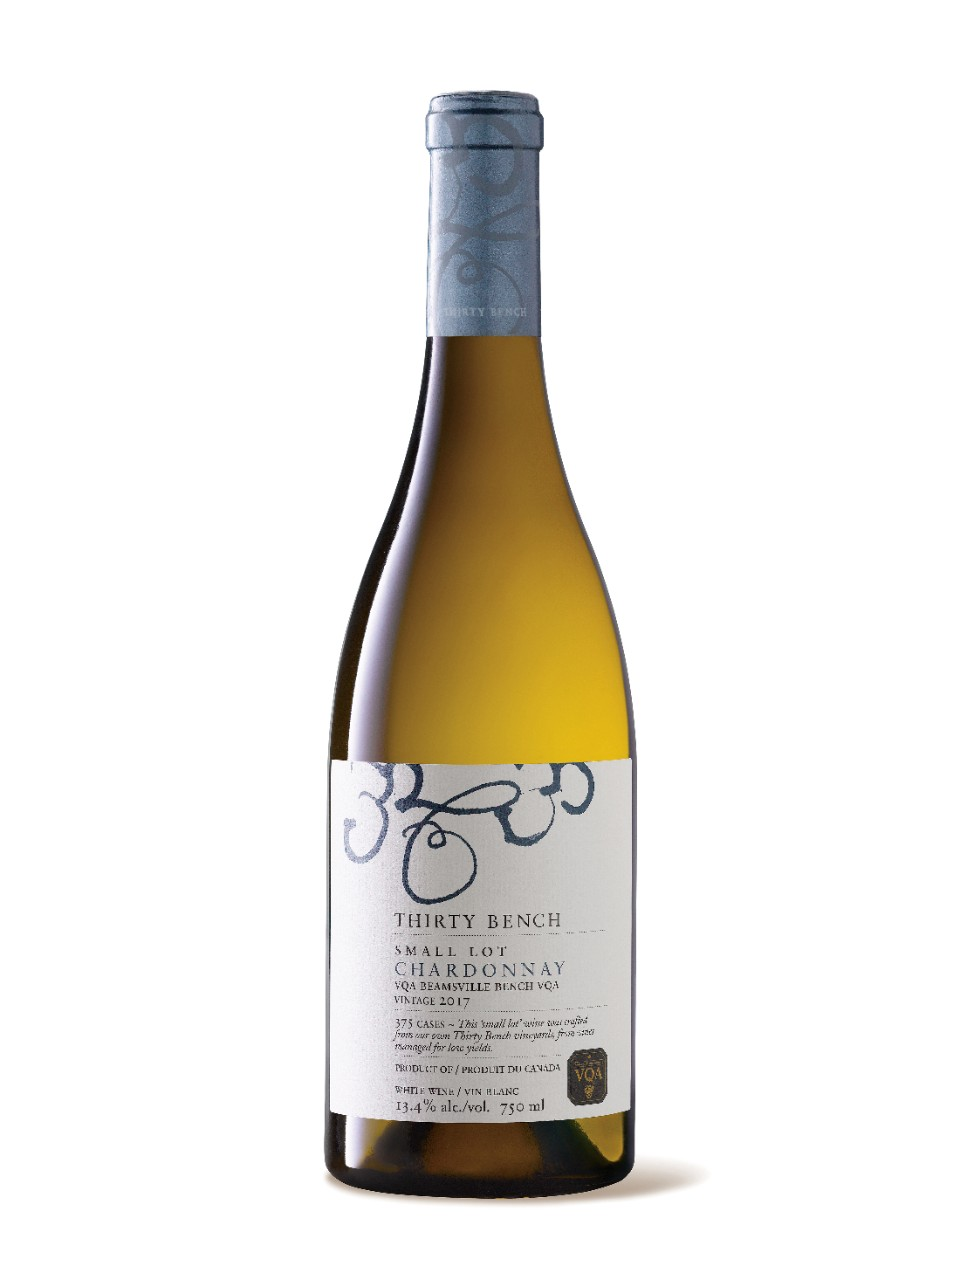 Chardonnay Small Lot Thirty Bench 2015